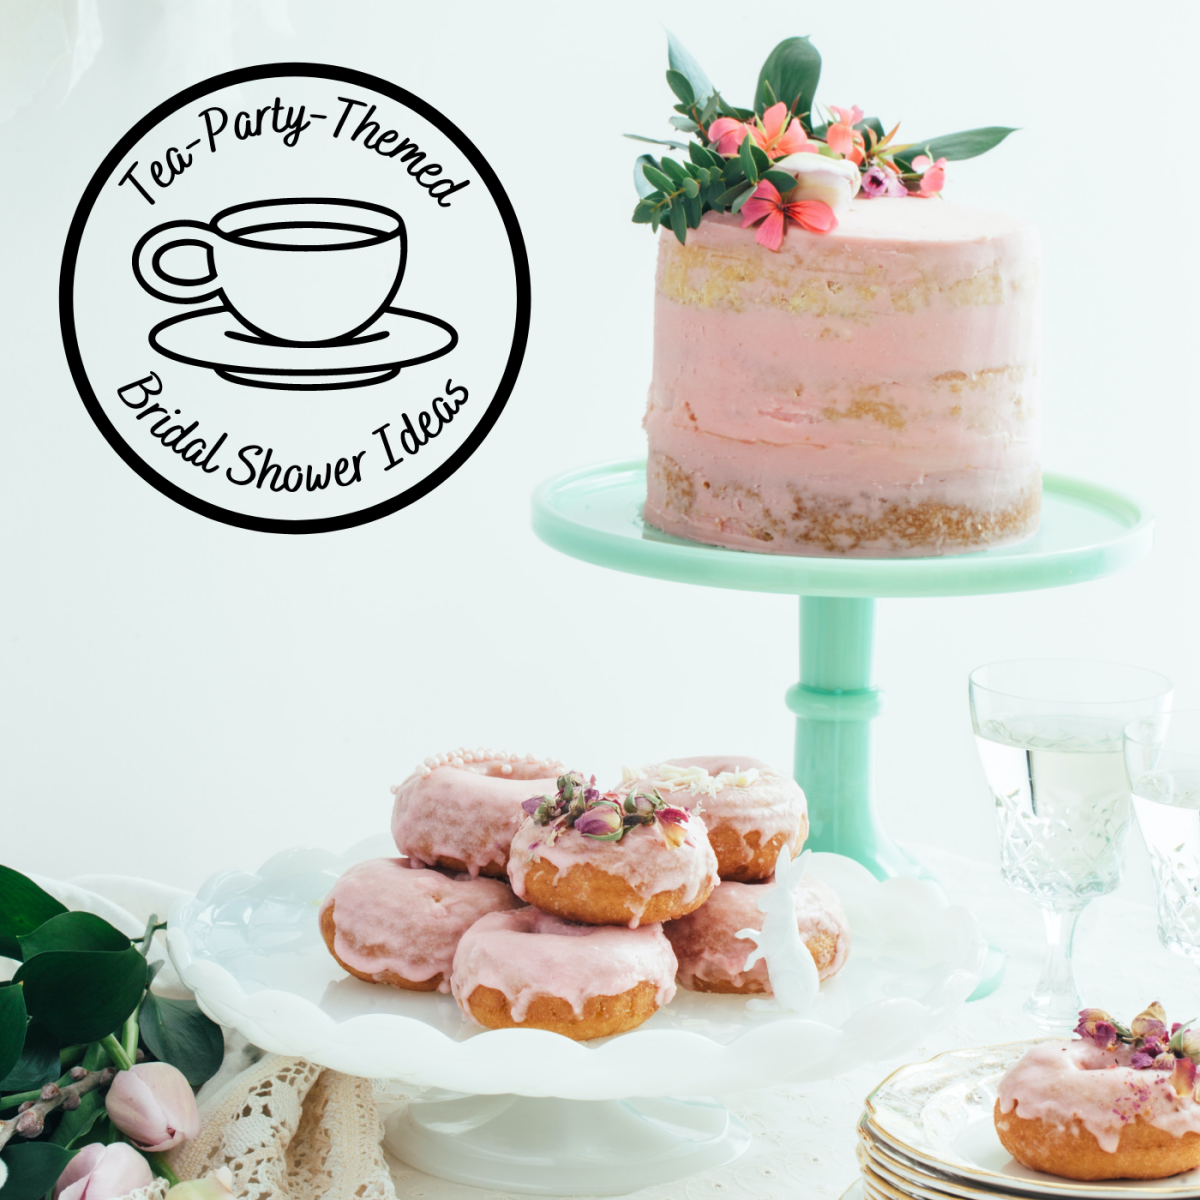 Unsure of what type of bridal shower to throw? Why not have a tea party?